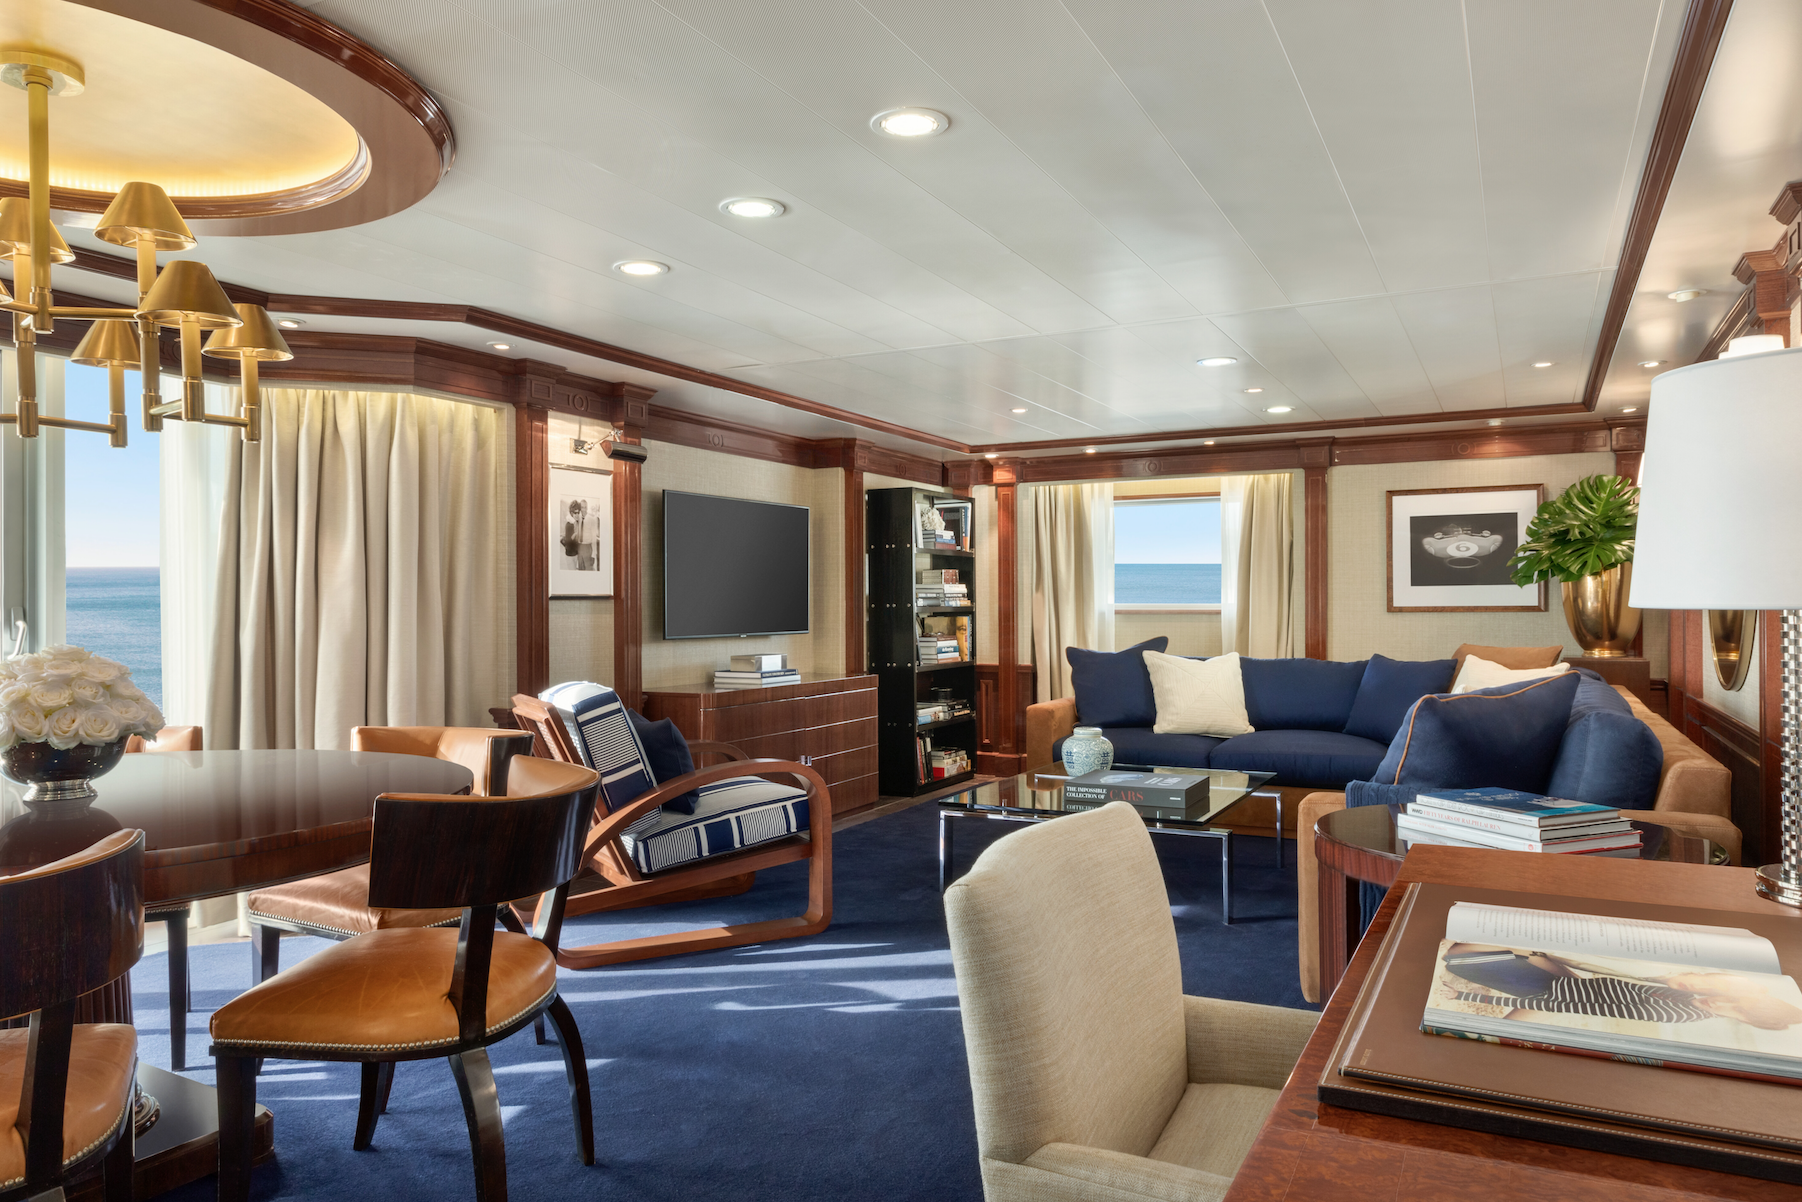 Oceania Cruises Completes Riviera Ship's Renovations